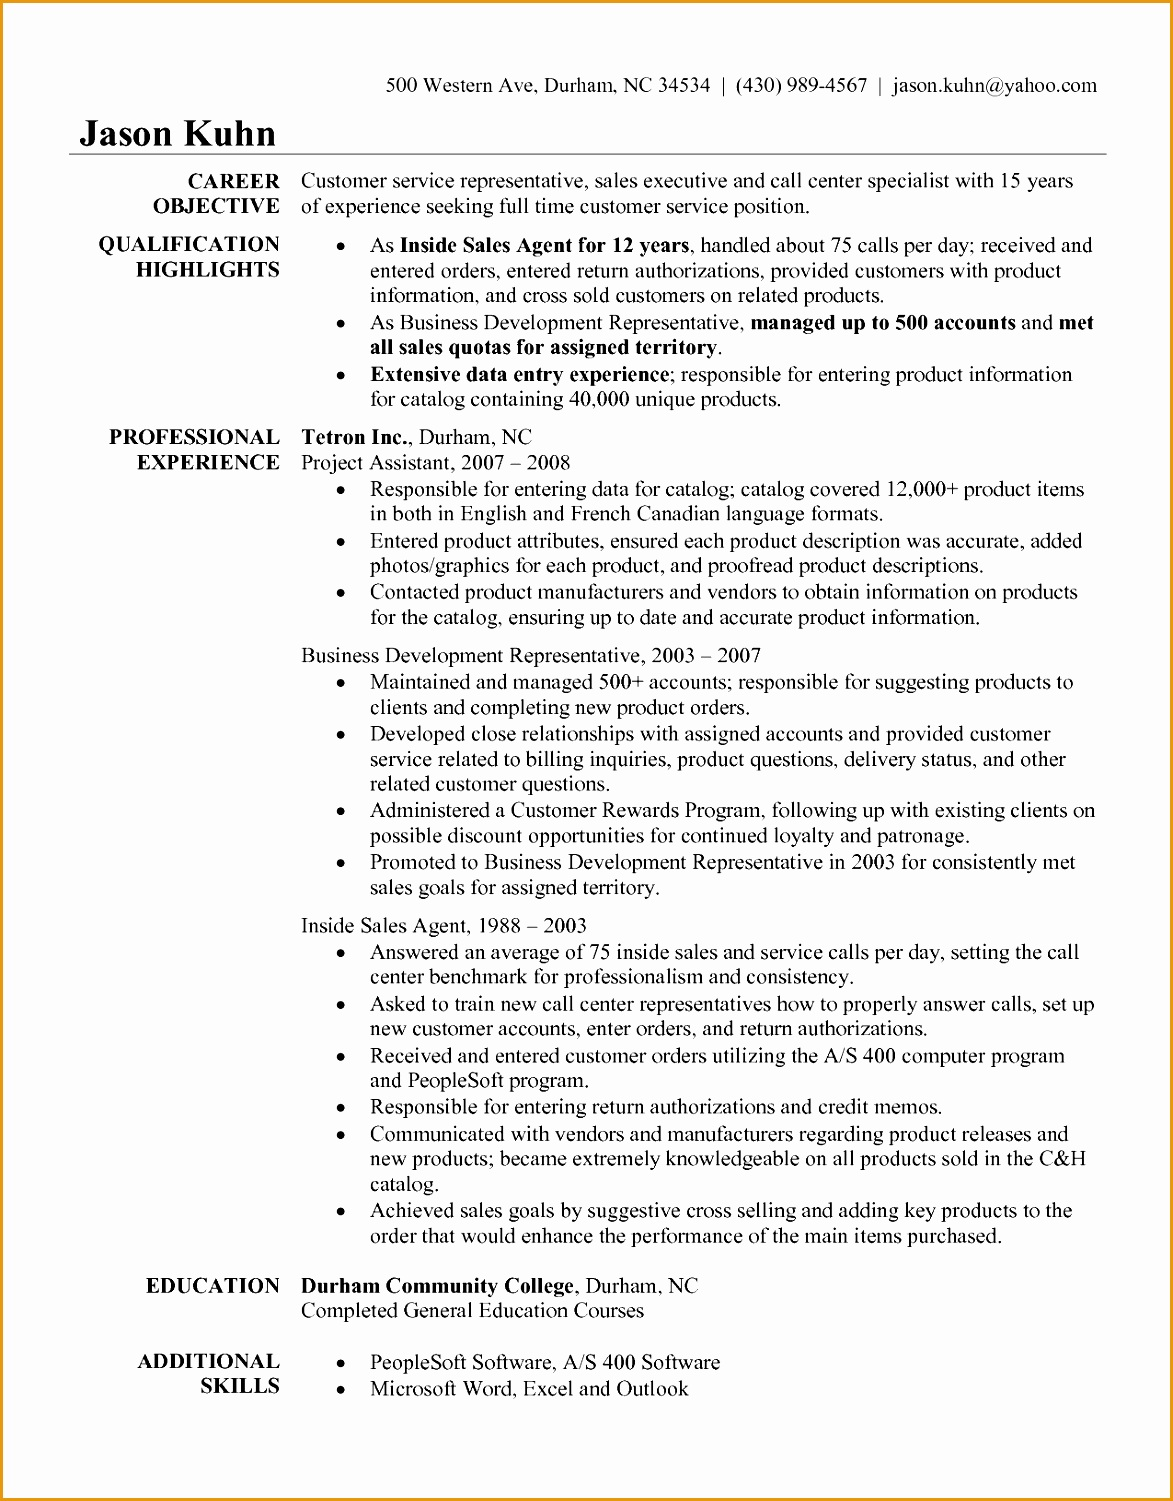 Resume Objective for Customer Service Representative Skill Resume Sample Resume with Customer Service Skills Customer15011173